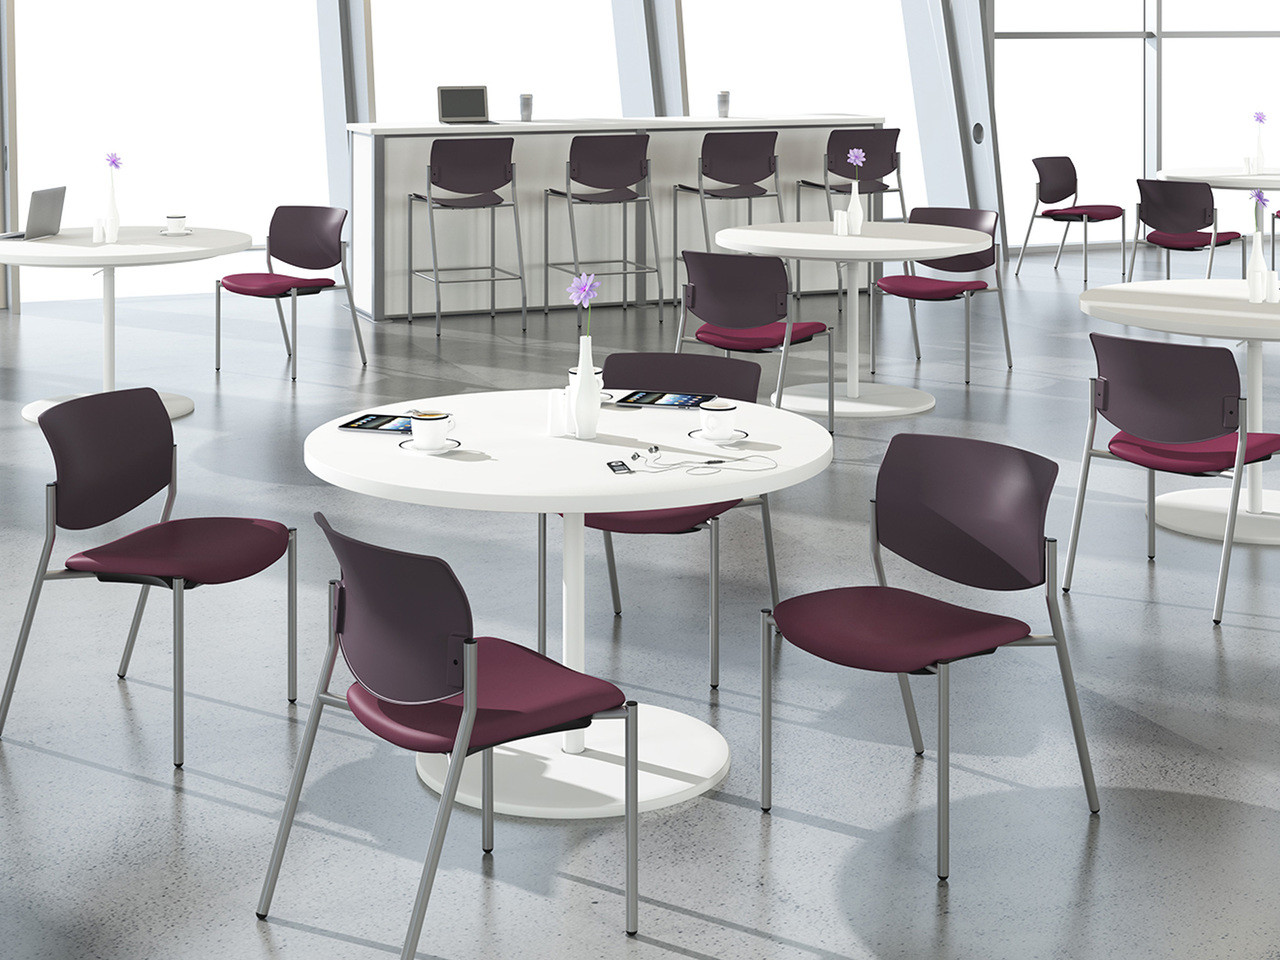 Freelance Multipurpose Chairs And Stools, SitOnIt Seating Ultrafabrics  Brisa Fresco Dahlia, Silver Frame ...